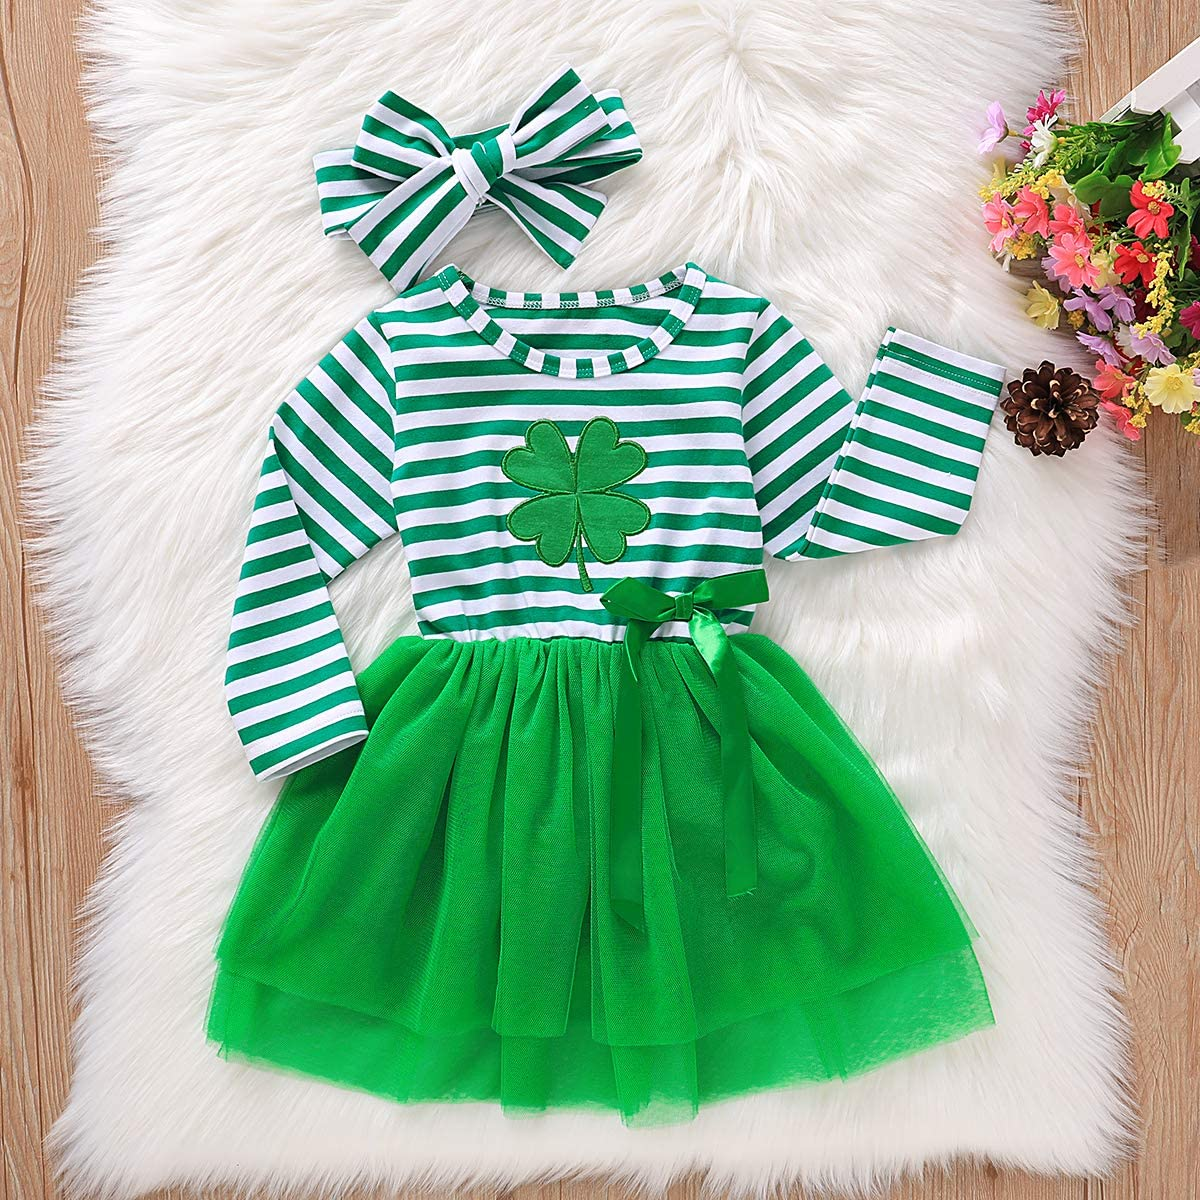 Toddler Girl St Patricks Day Outfits Long Sleeve Clover Dress Headband Toddler Girl St Patricks Day Clothes Set